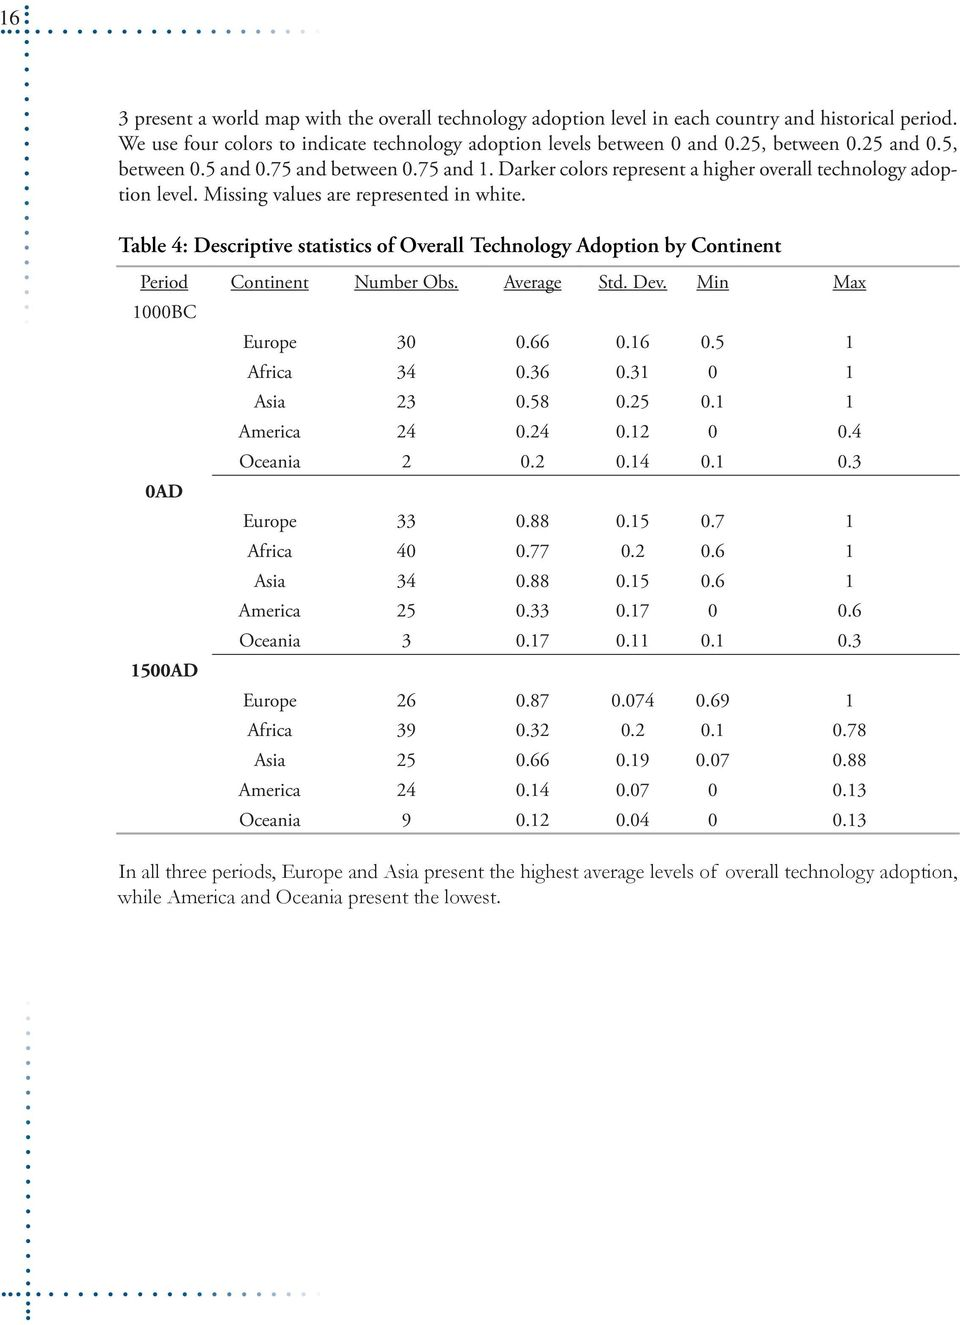 Table 4: Descriptive statistics of Overall Technology Adoption by Continent Period Continent Number Obs. Average Std. Dev. Min Max 1000BC Europe 30 0.66 0.16 0.5 1 Africa 34 0.36 0.31 0 1 Asia 23 0.